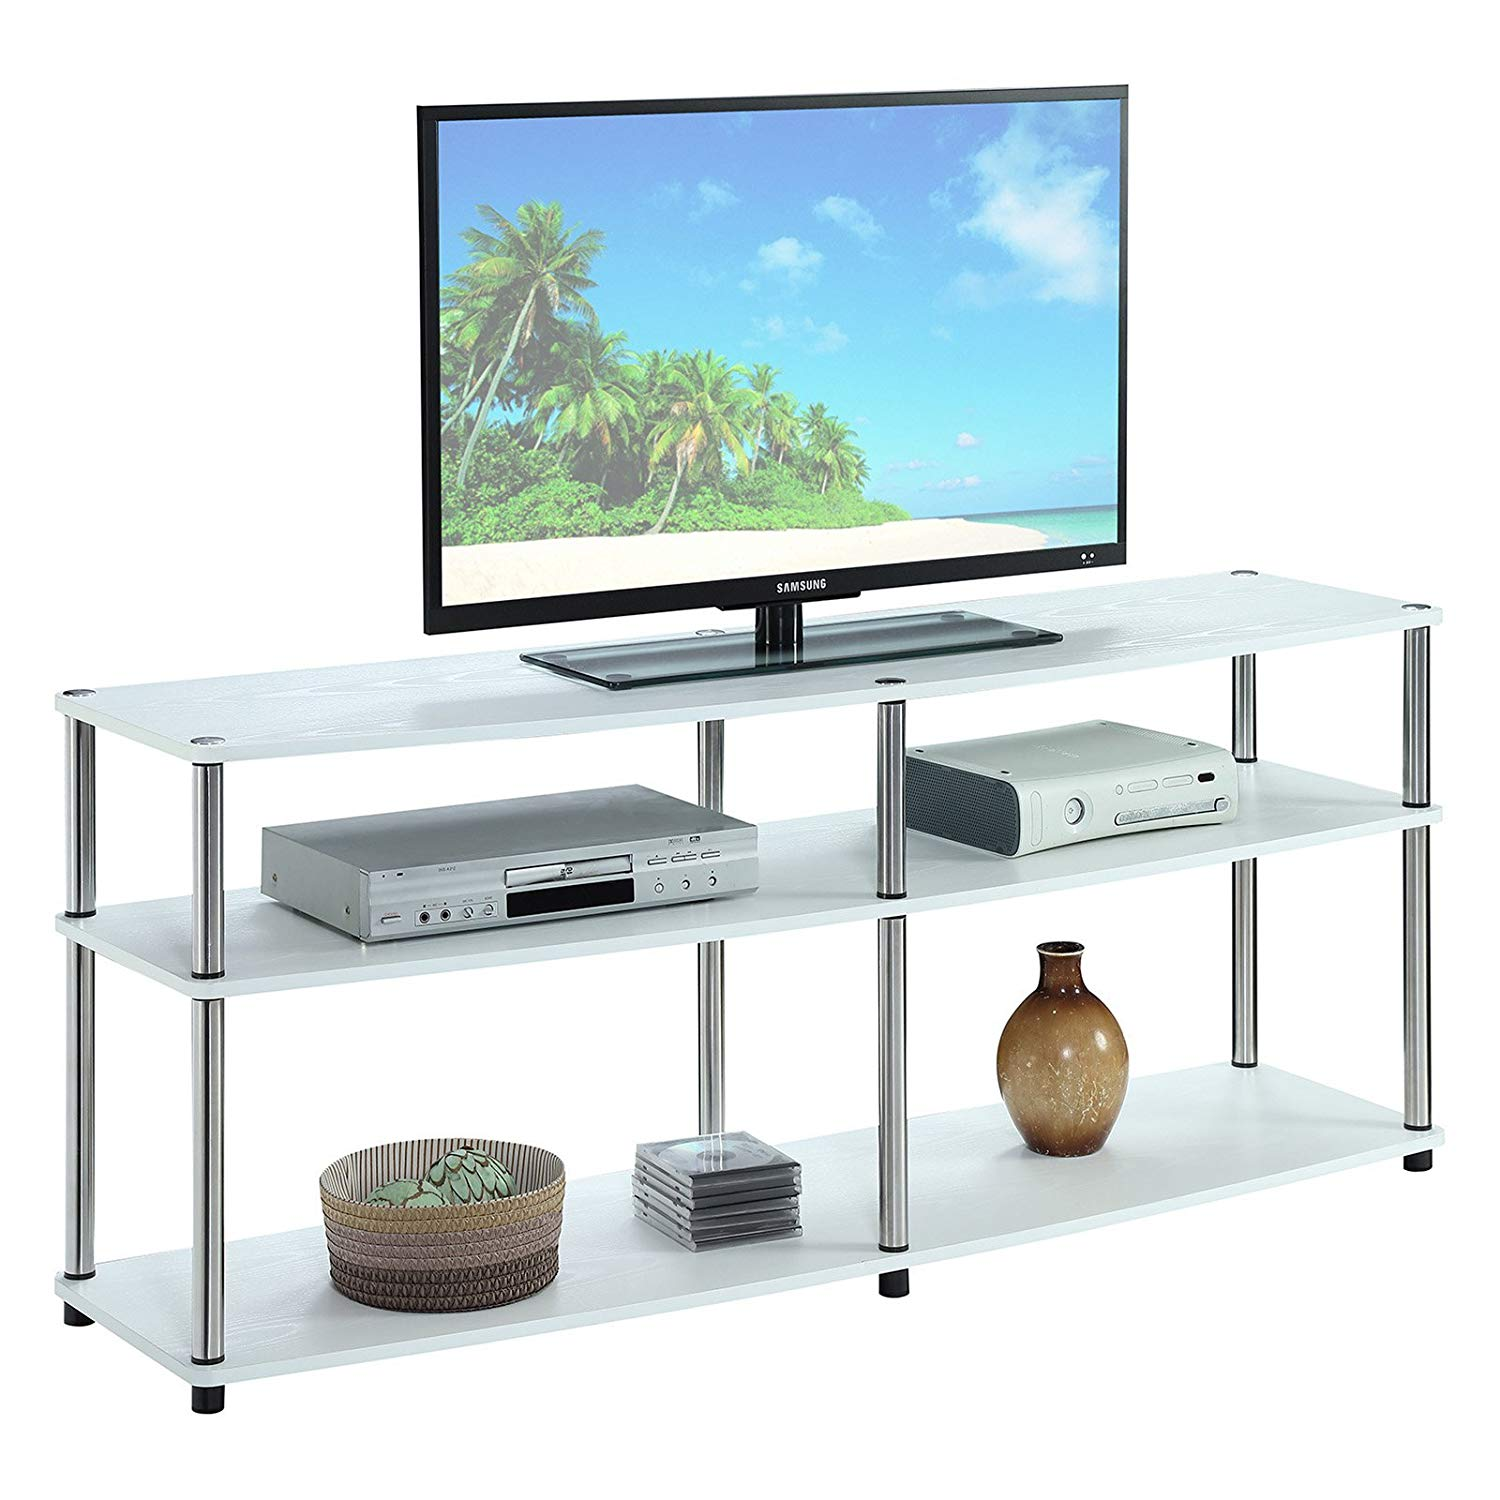 Cheap Tv Stand For 60 Tv Find Tv Stand For 60 Tv Deals On Line At